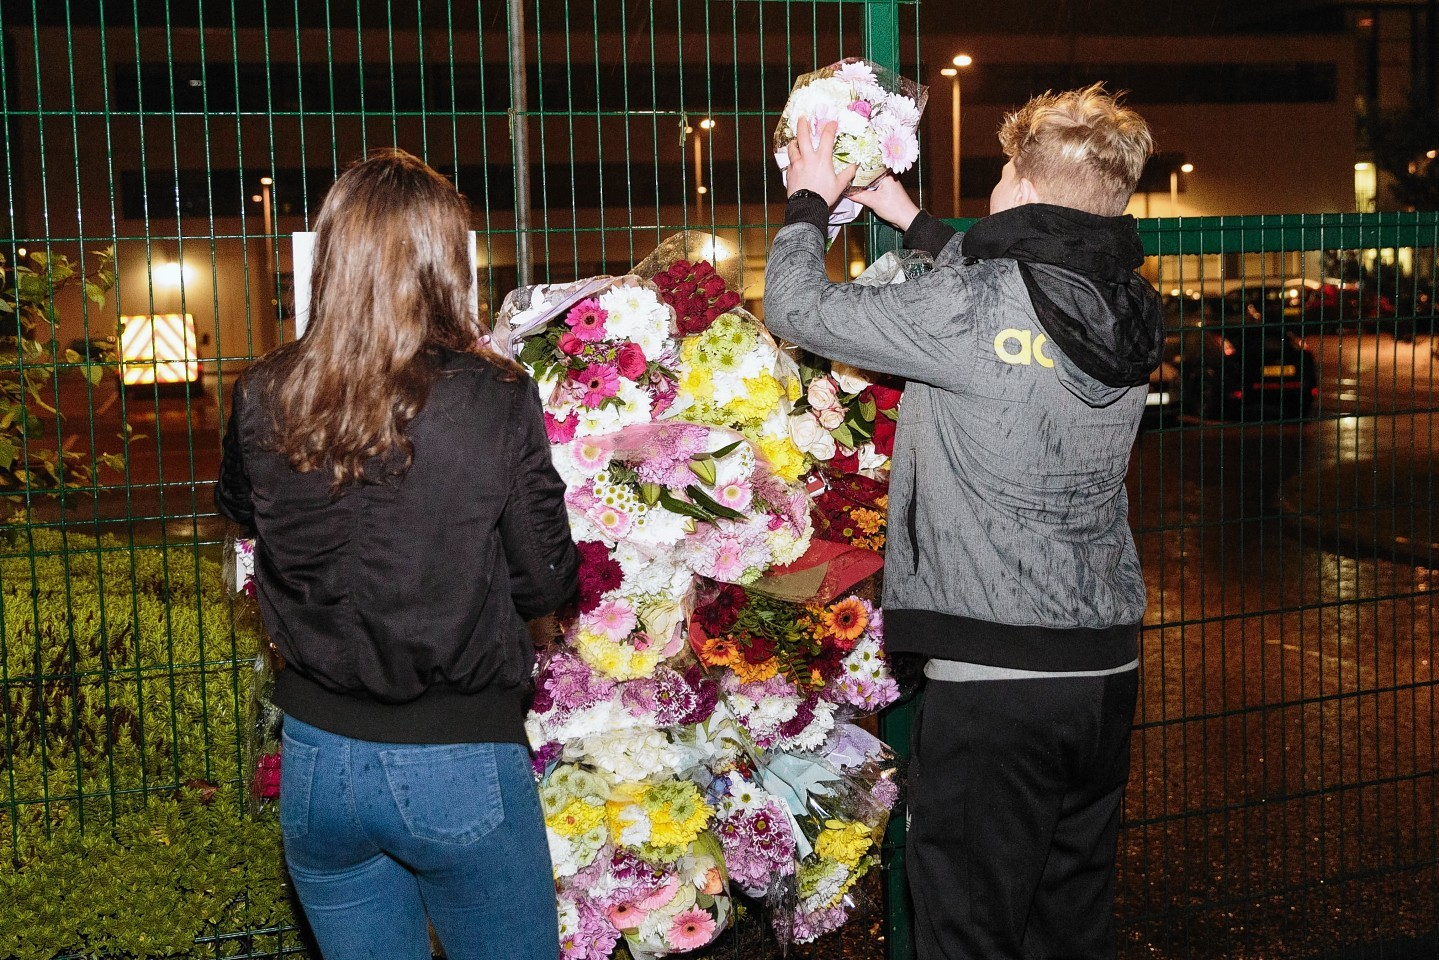 Pupils, teachers and the wider community has all paid their respects. Pictures by Kami Thomson